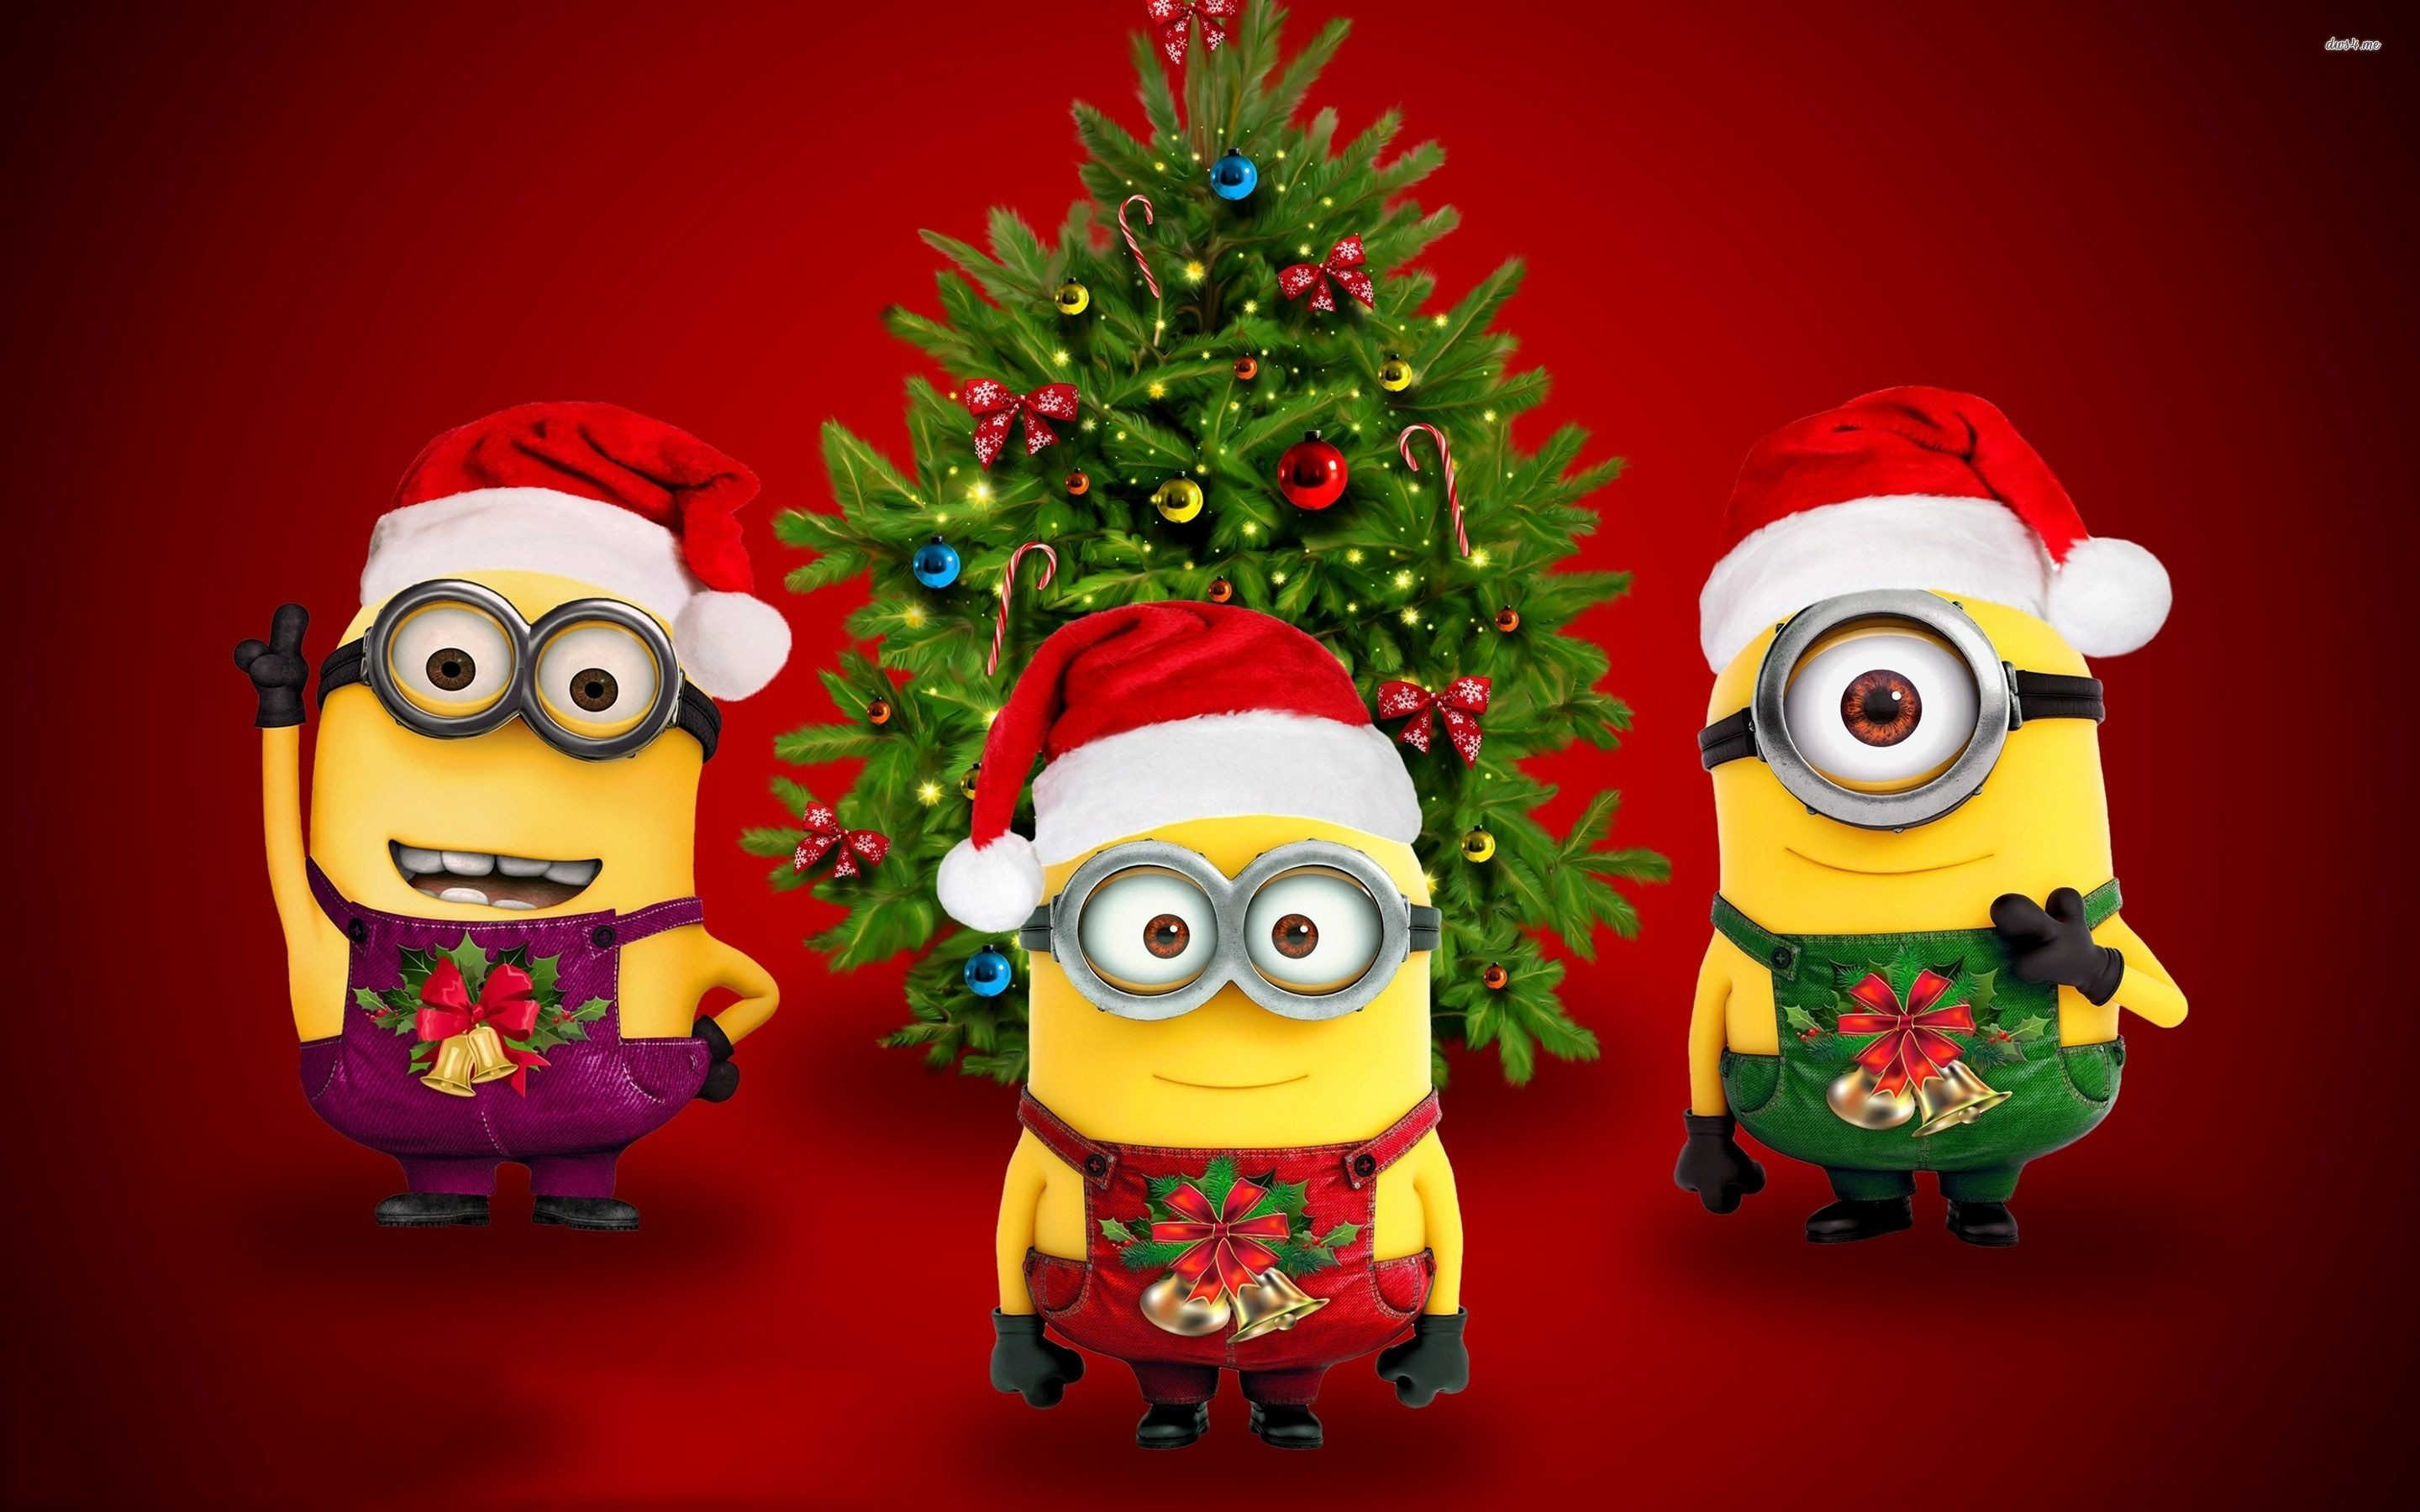 Res: 2880x1800, Merry christmas minions wallpaper - Holiday wallpapers - #34001